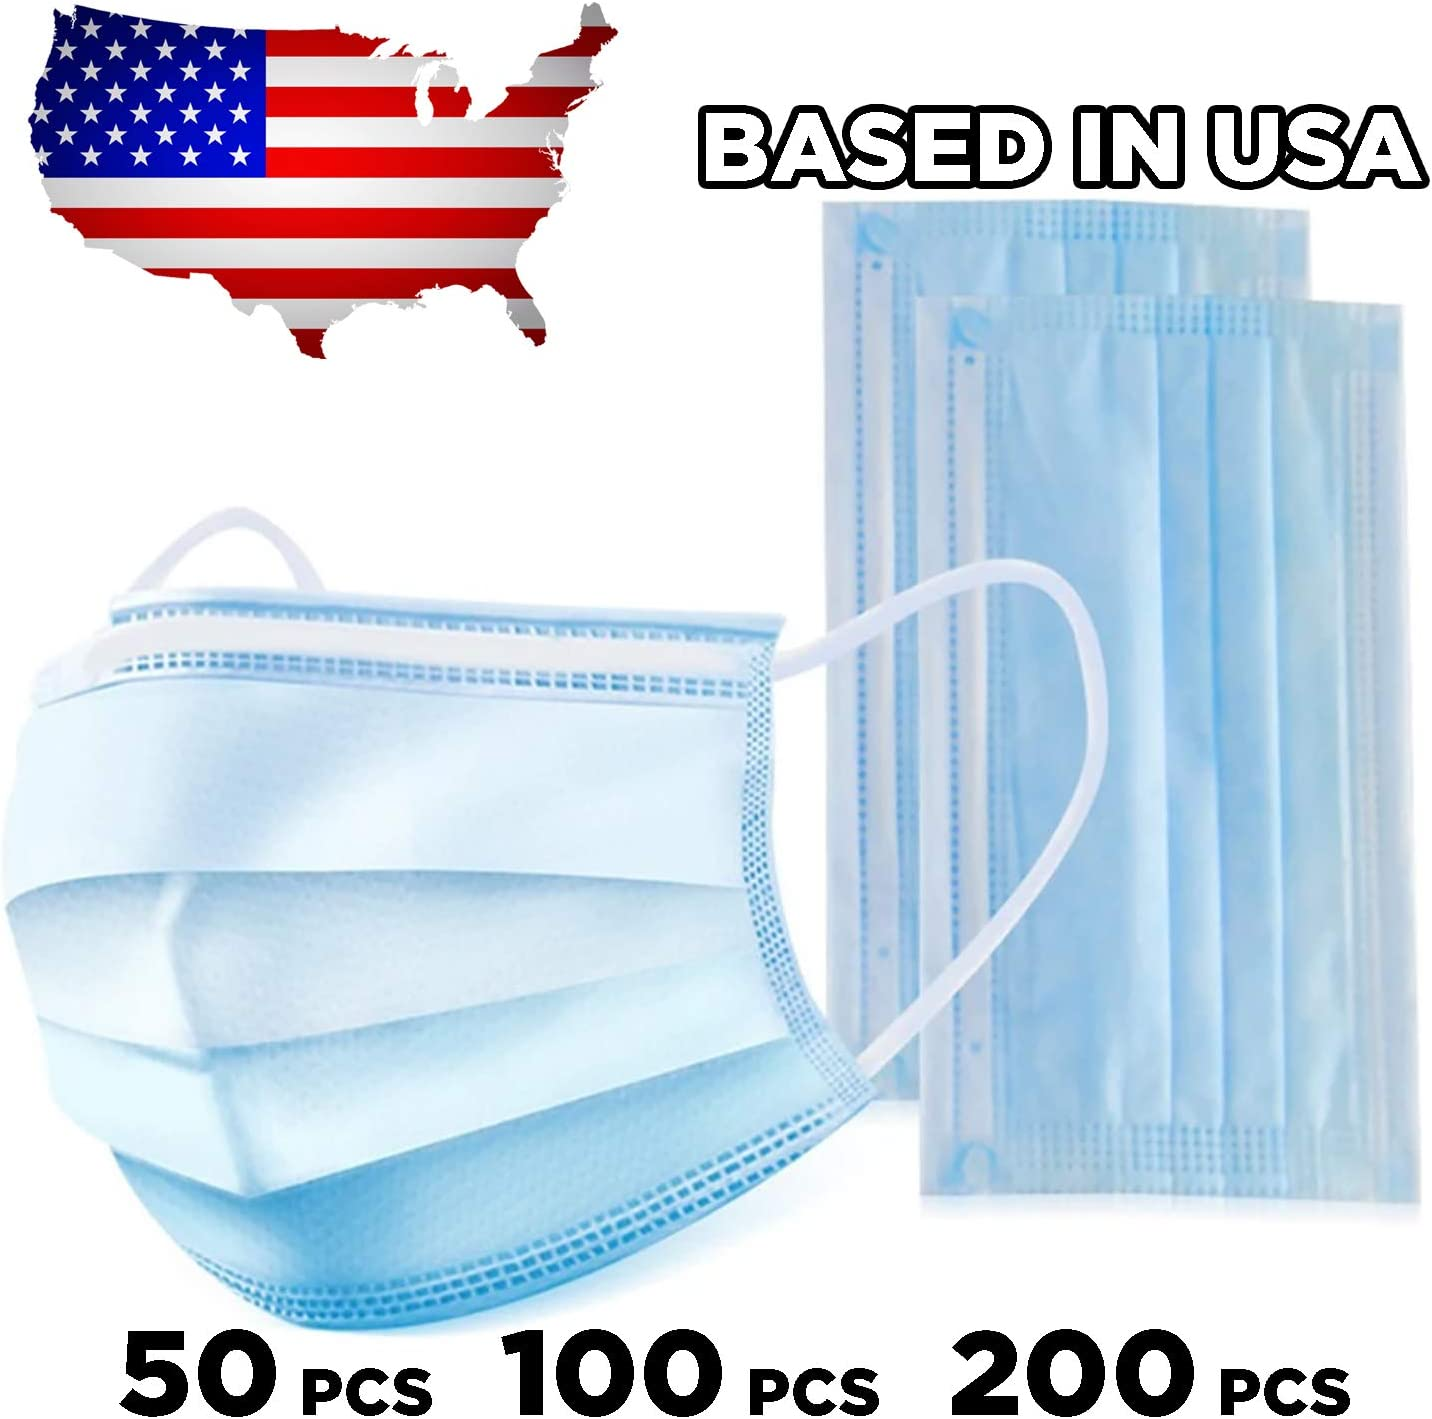 3 Ply Disposable Mask with Elastic Ear Loops - Mask 50 PCS - Soft & Comfortable Filter Safety Mask for Dust Protection - Protective